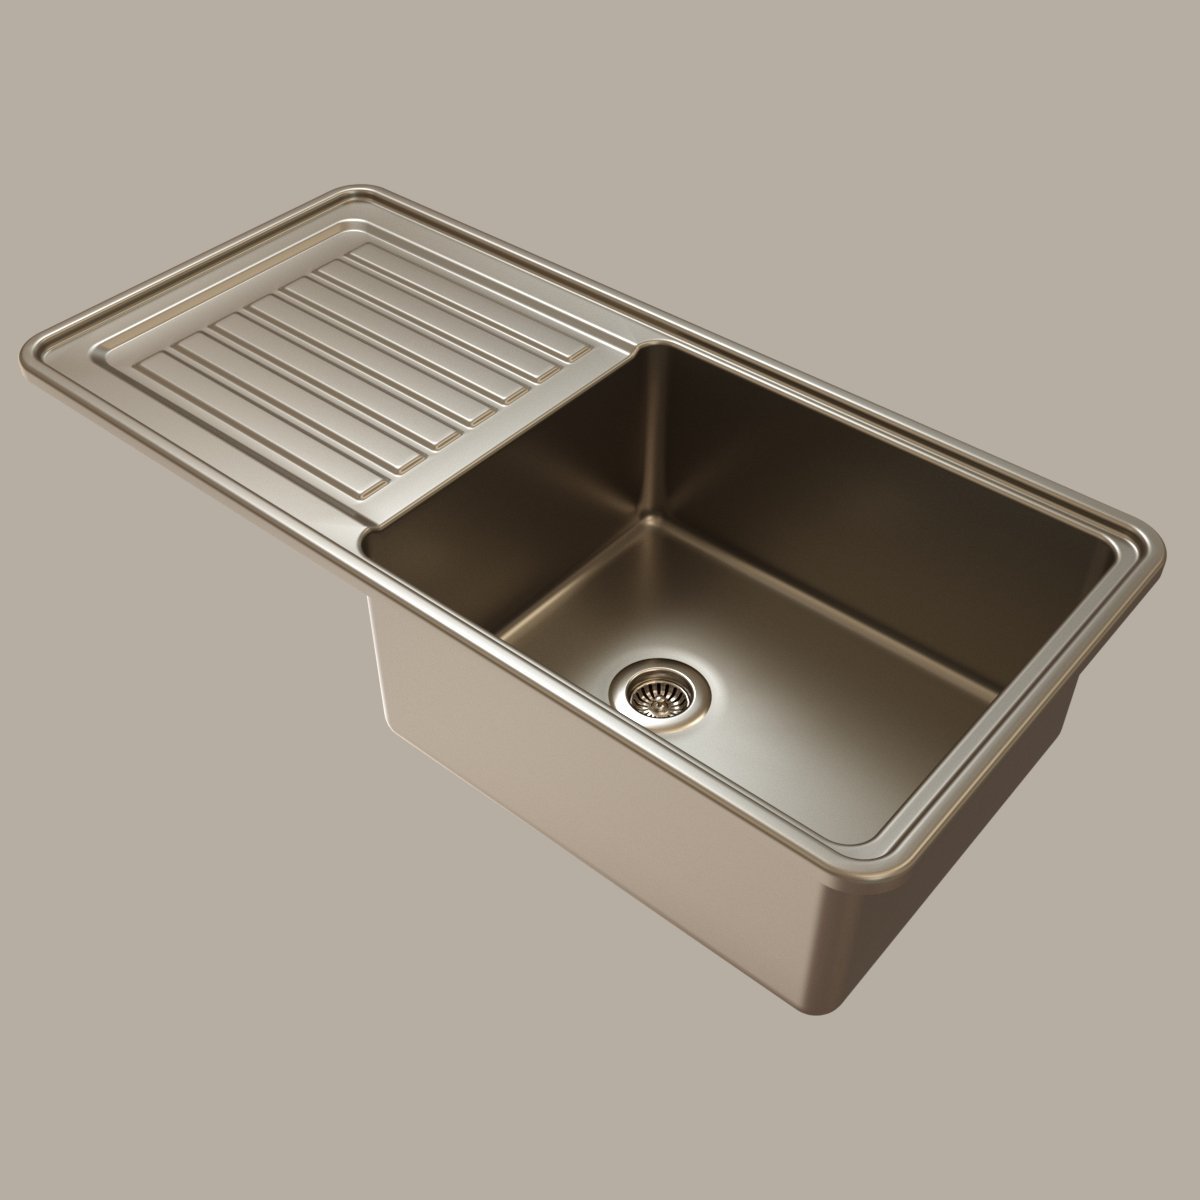 Stainless steel kitchen sink 3D Model in Cookware Tools 3DExport